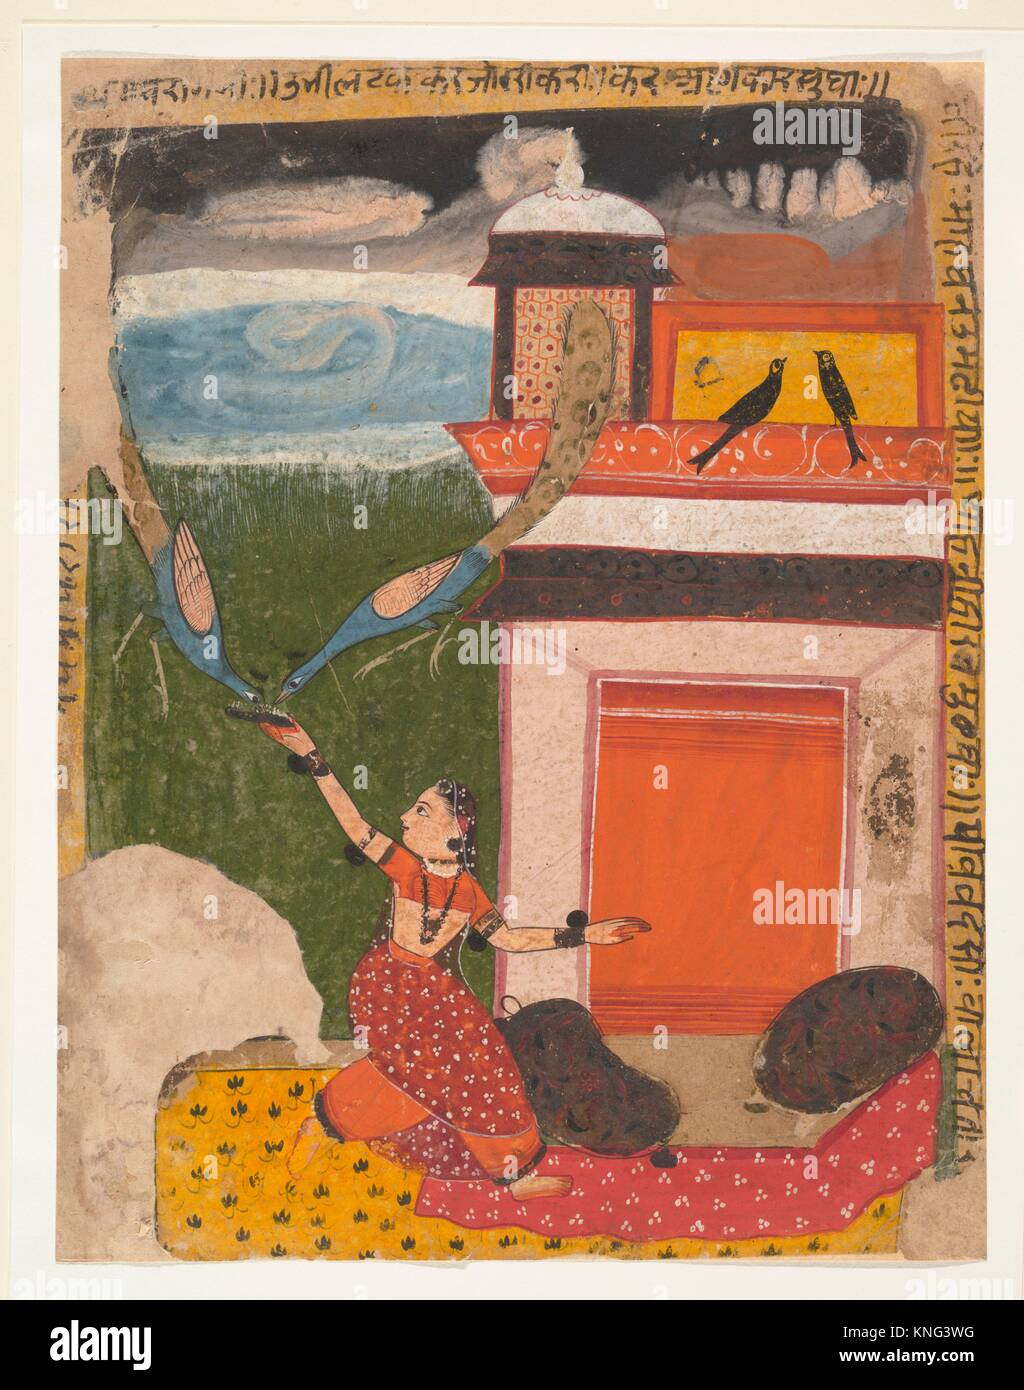 Madhumadhavai Ragini: Page from a Dispersed Ragamala Series (Garland of Musical Modes). Date: ca. 1640-50; Culture: - Stock Image